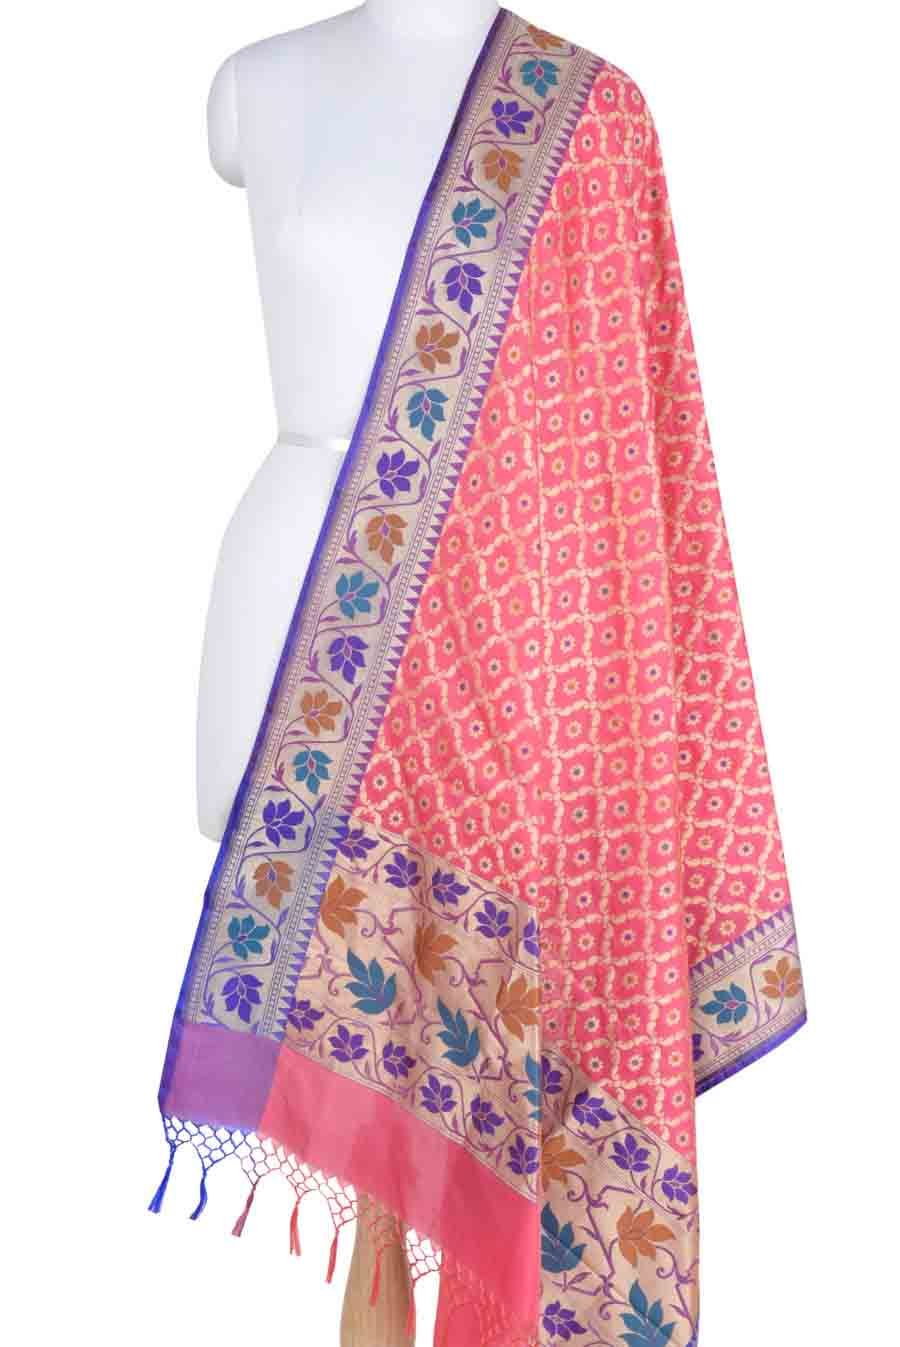 Light Pink Banarasi Dupatta with leaf jaal and floral motifs (1) Main